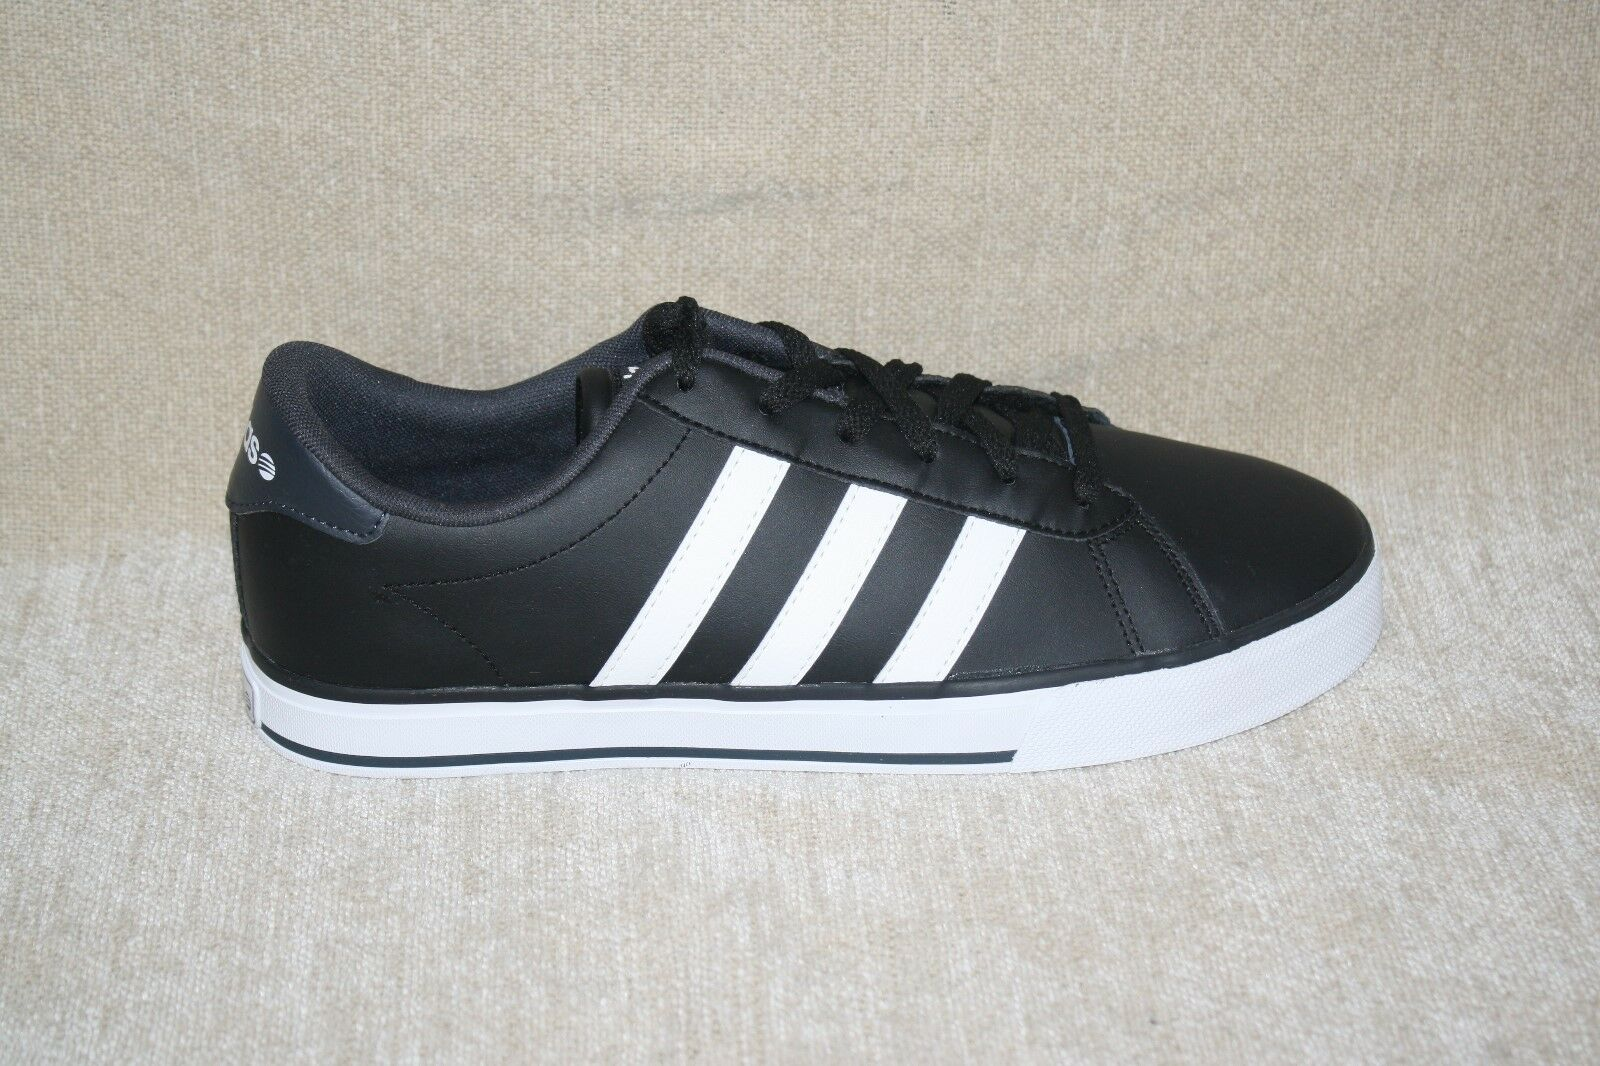 MENS ADIDAS NEO CLOUDFOAM ADVANTAGE BLACK AND WHITE SNEAKERS US SIZE 10 Price reduction Cheap women's shoes women's shoes